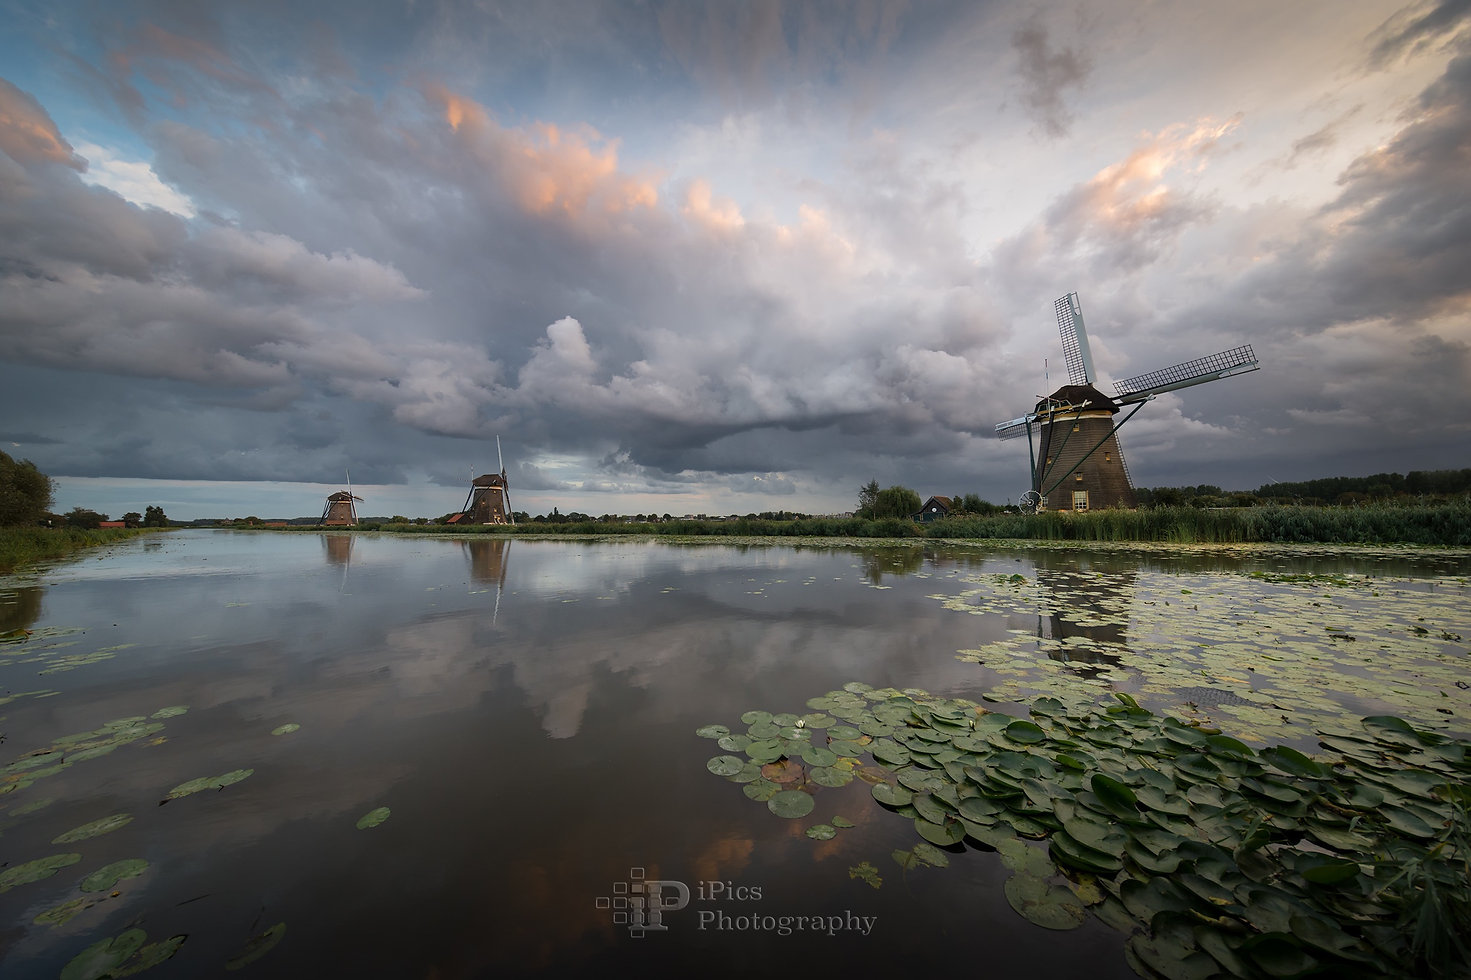 Big rain clouds creating a dramatic sky over a landscape with three windmills at the side of the river with reflection in the water during a summer storm in Leidschendam, the Netherlands.